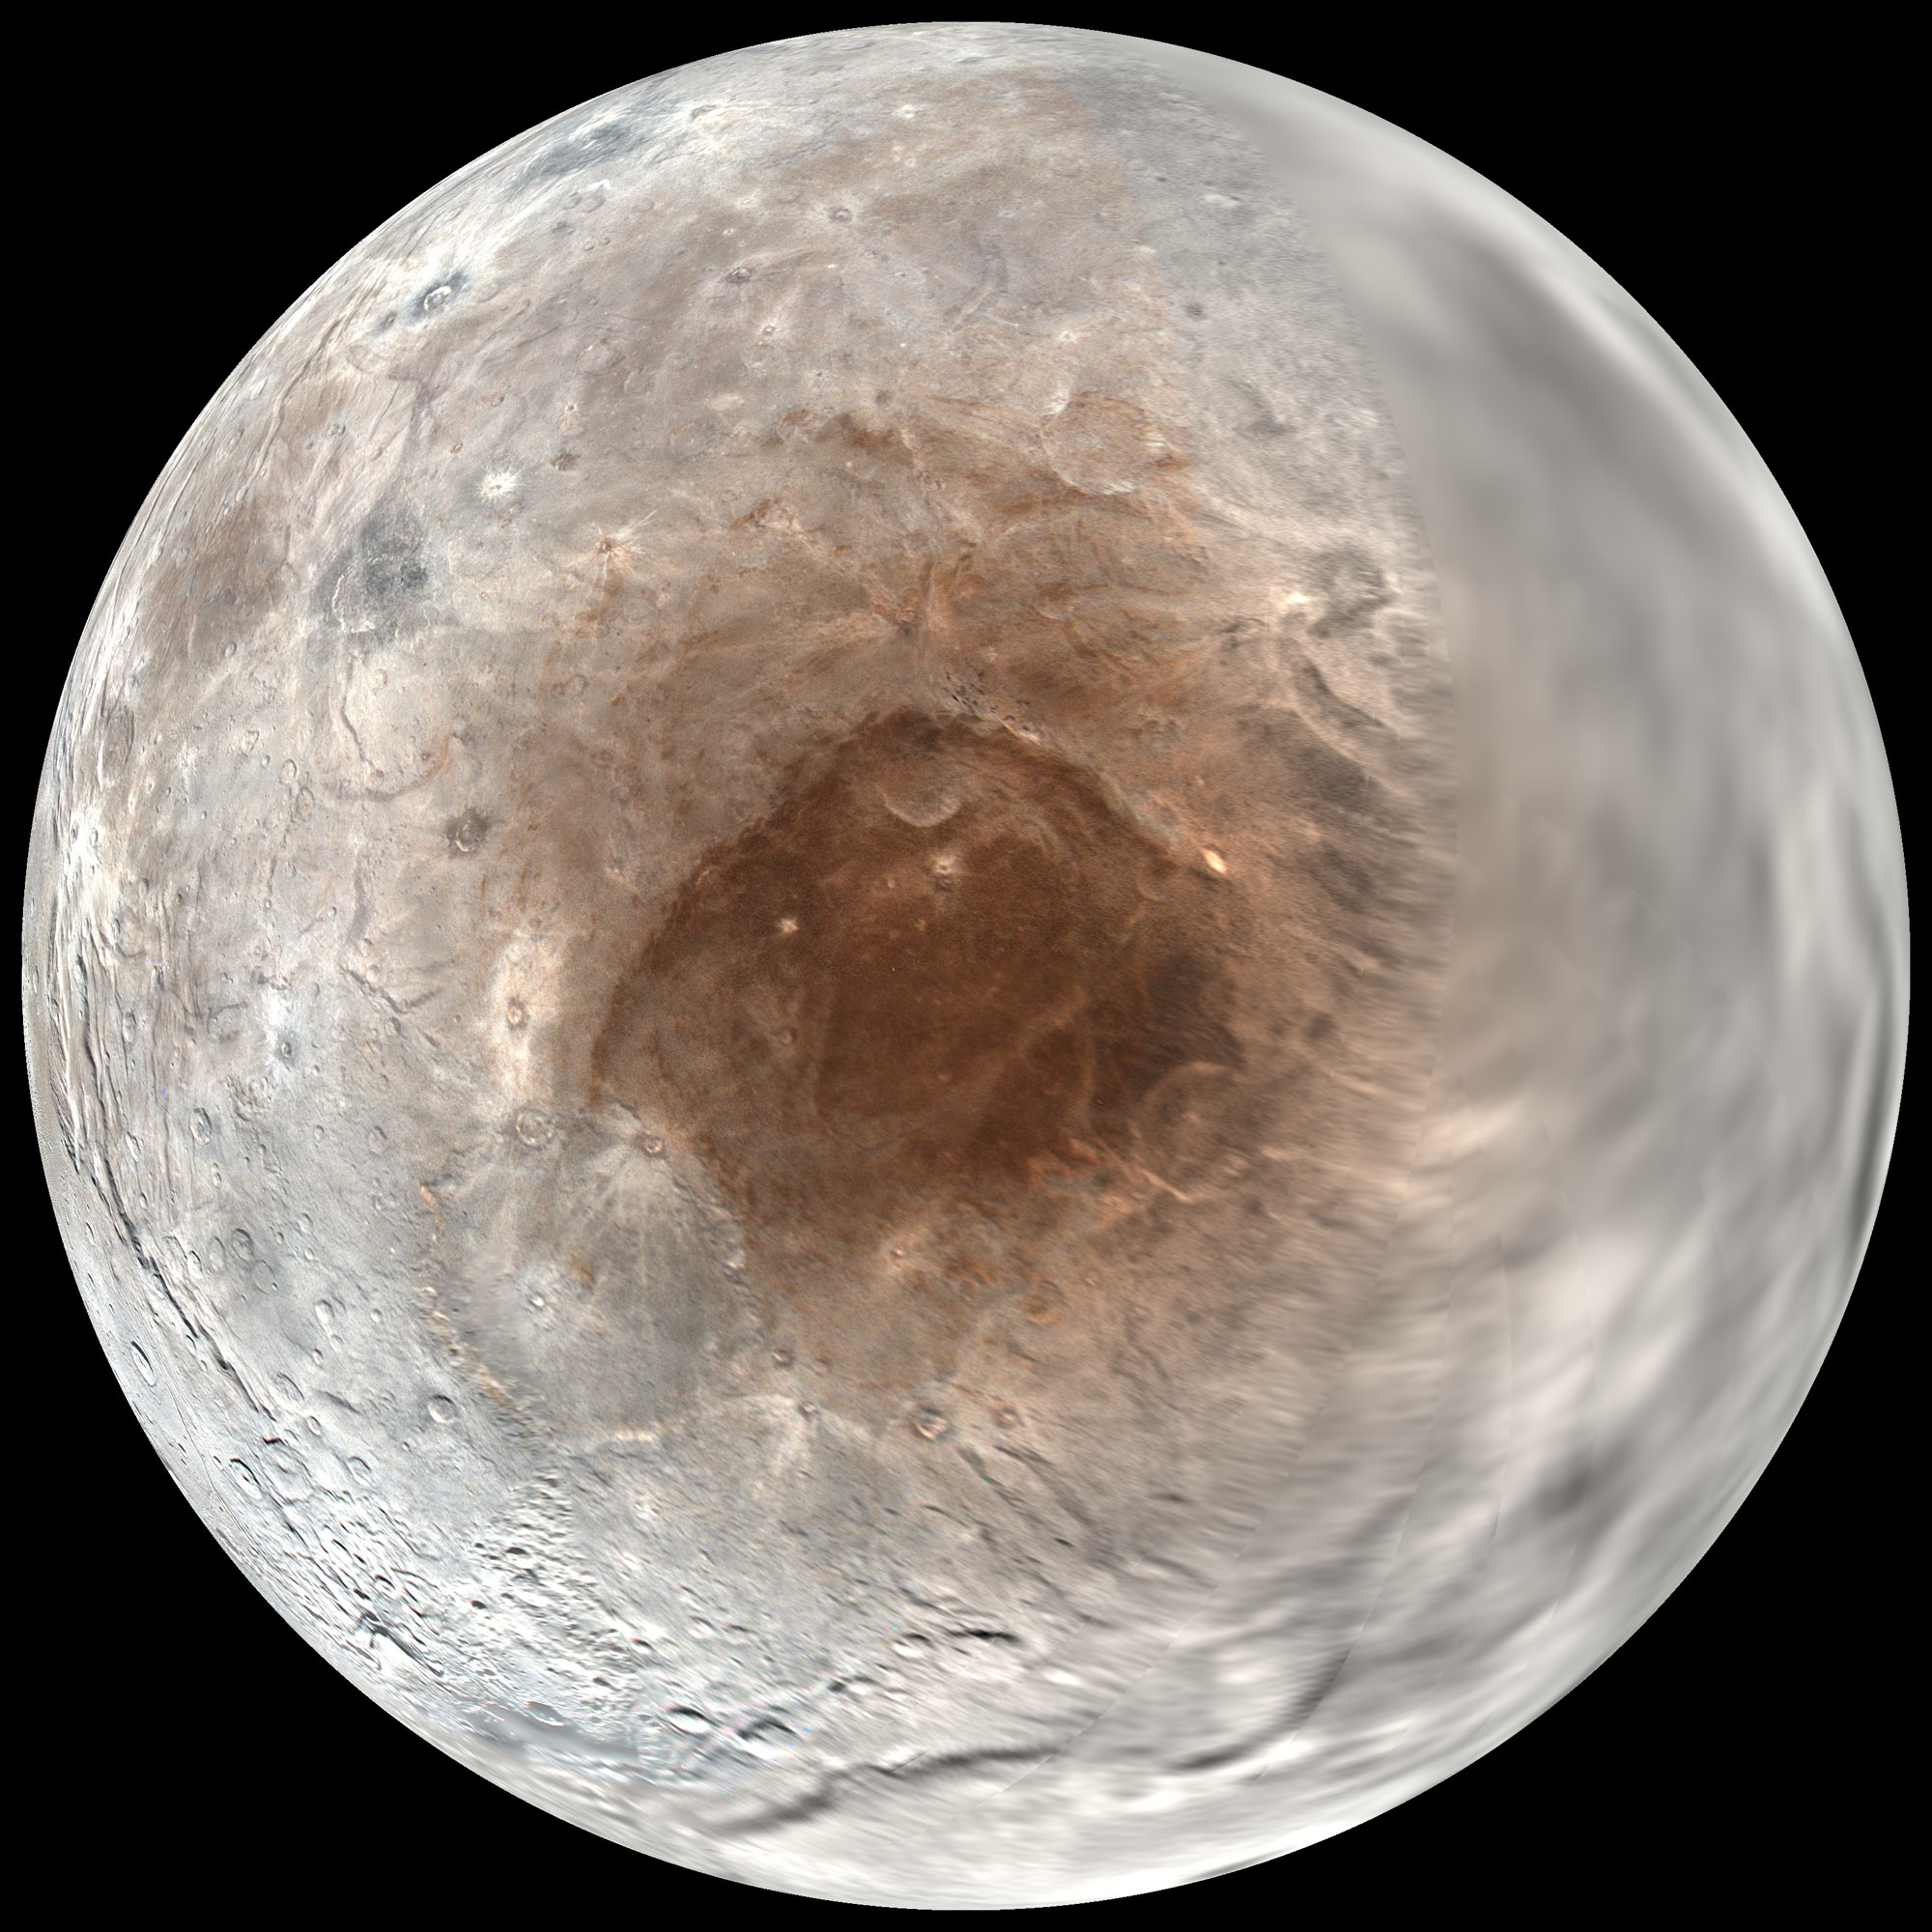 Pluto's largest moon Charon has a red spot at its north pole that may be caused by the atmosphere of Pluto, scientists announced on Sept. 14, 2016.